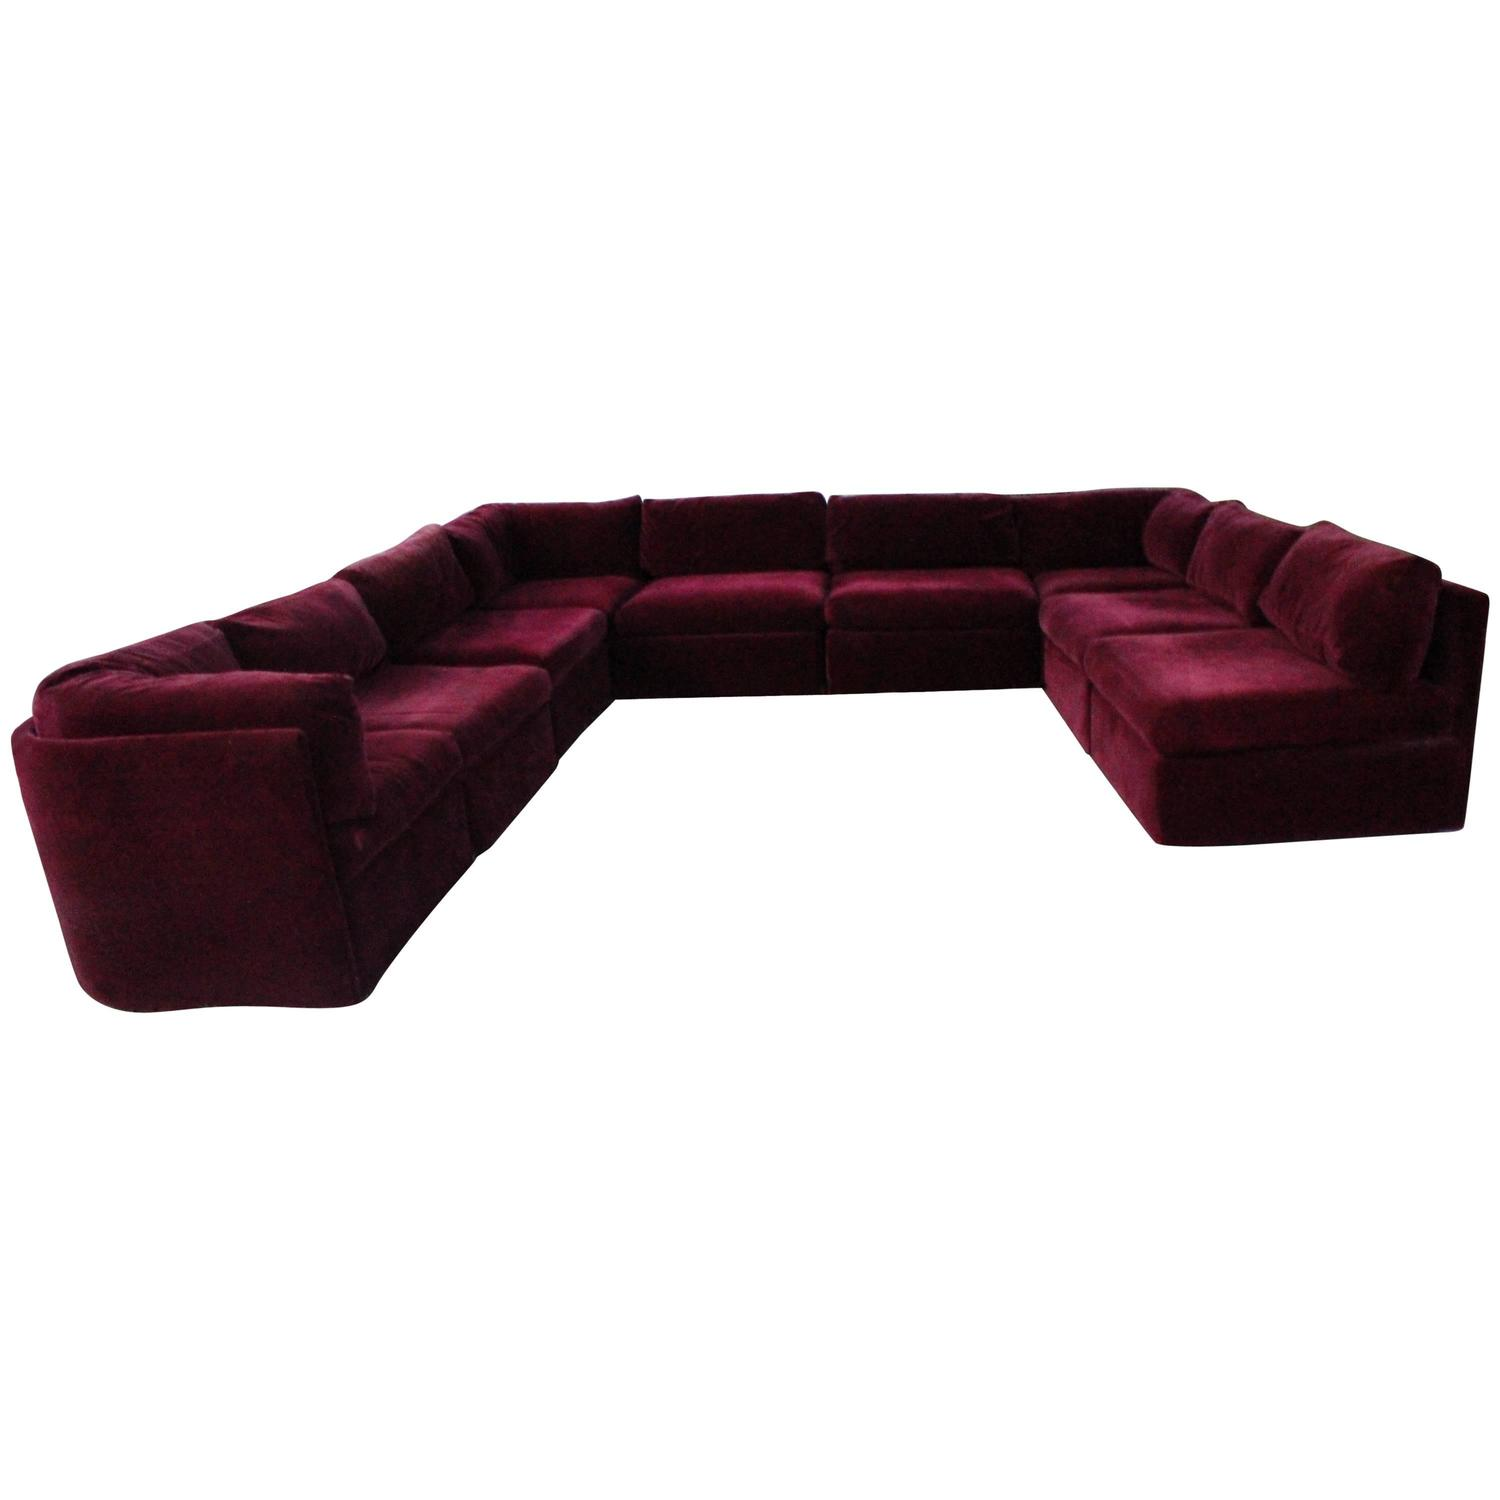 Milo Baughman for Thayer Coggin Tagged Nine Piece Sectional Sofa